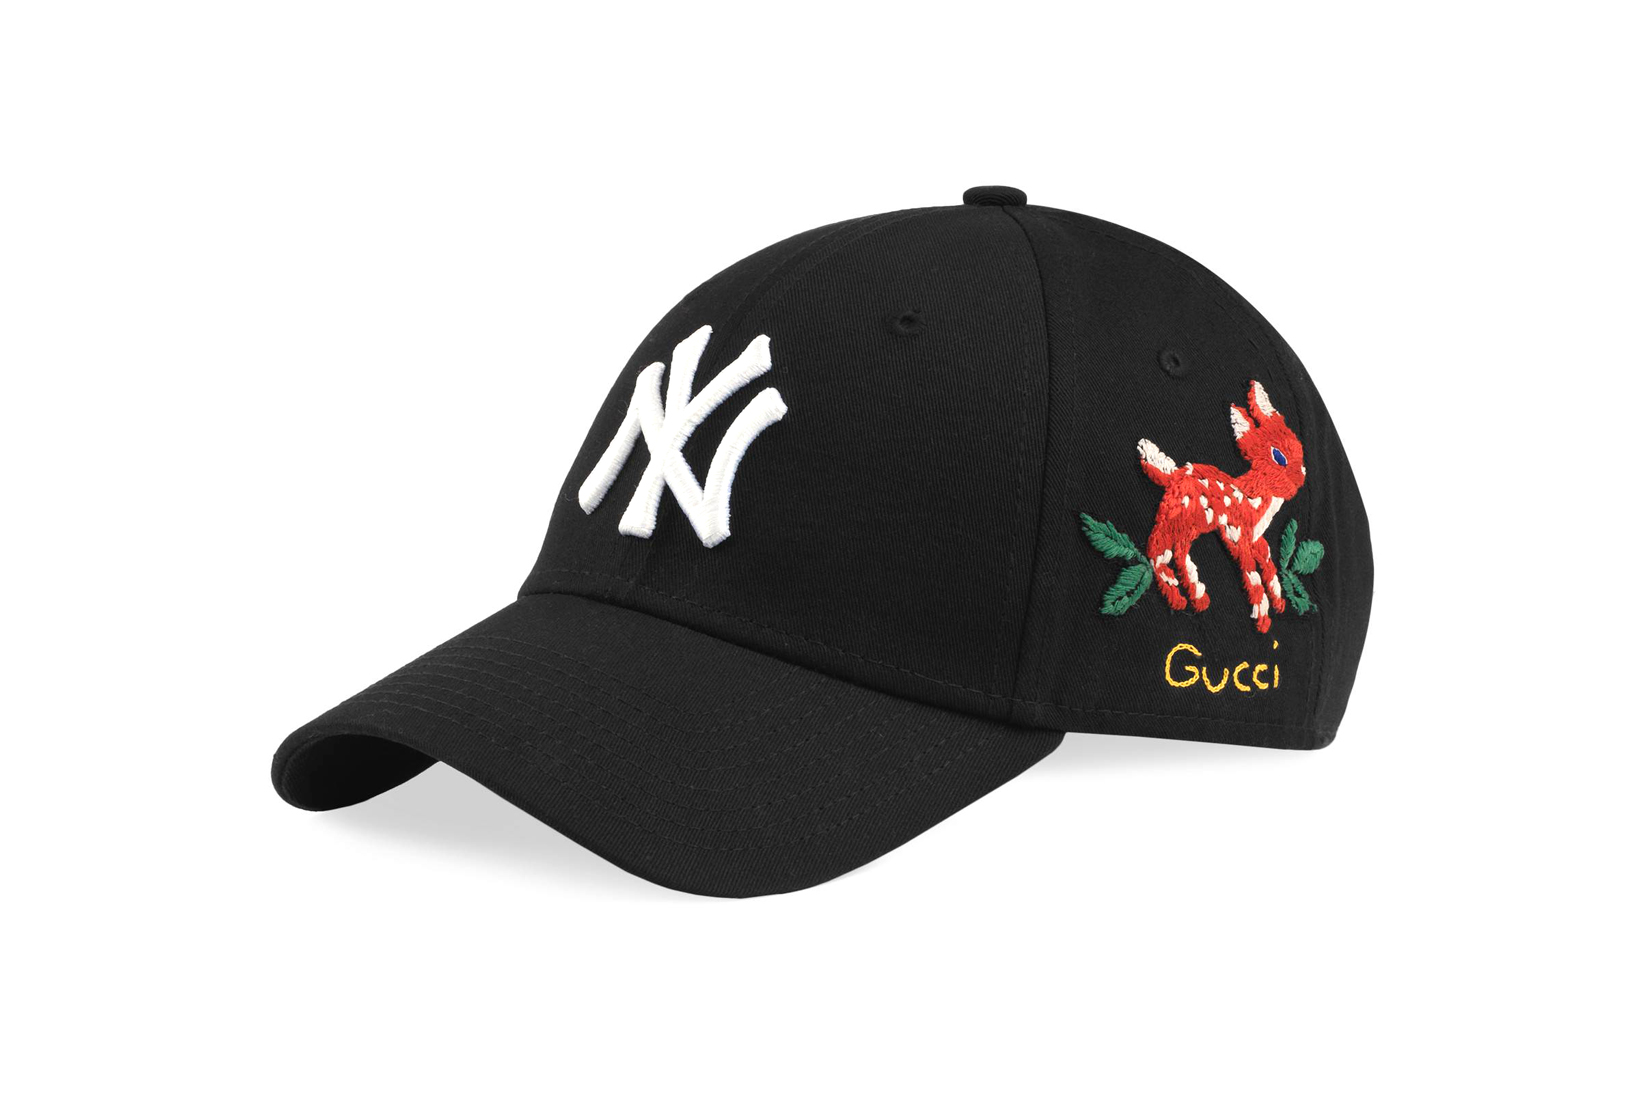 New York Yankees x Gucci Fall/Winter 2018